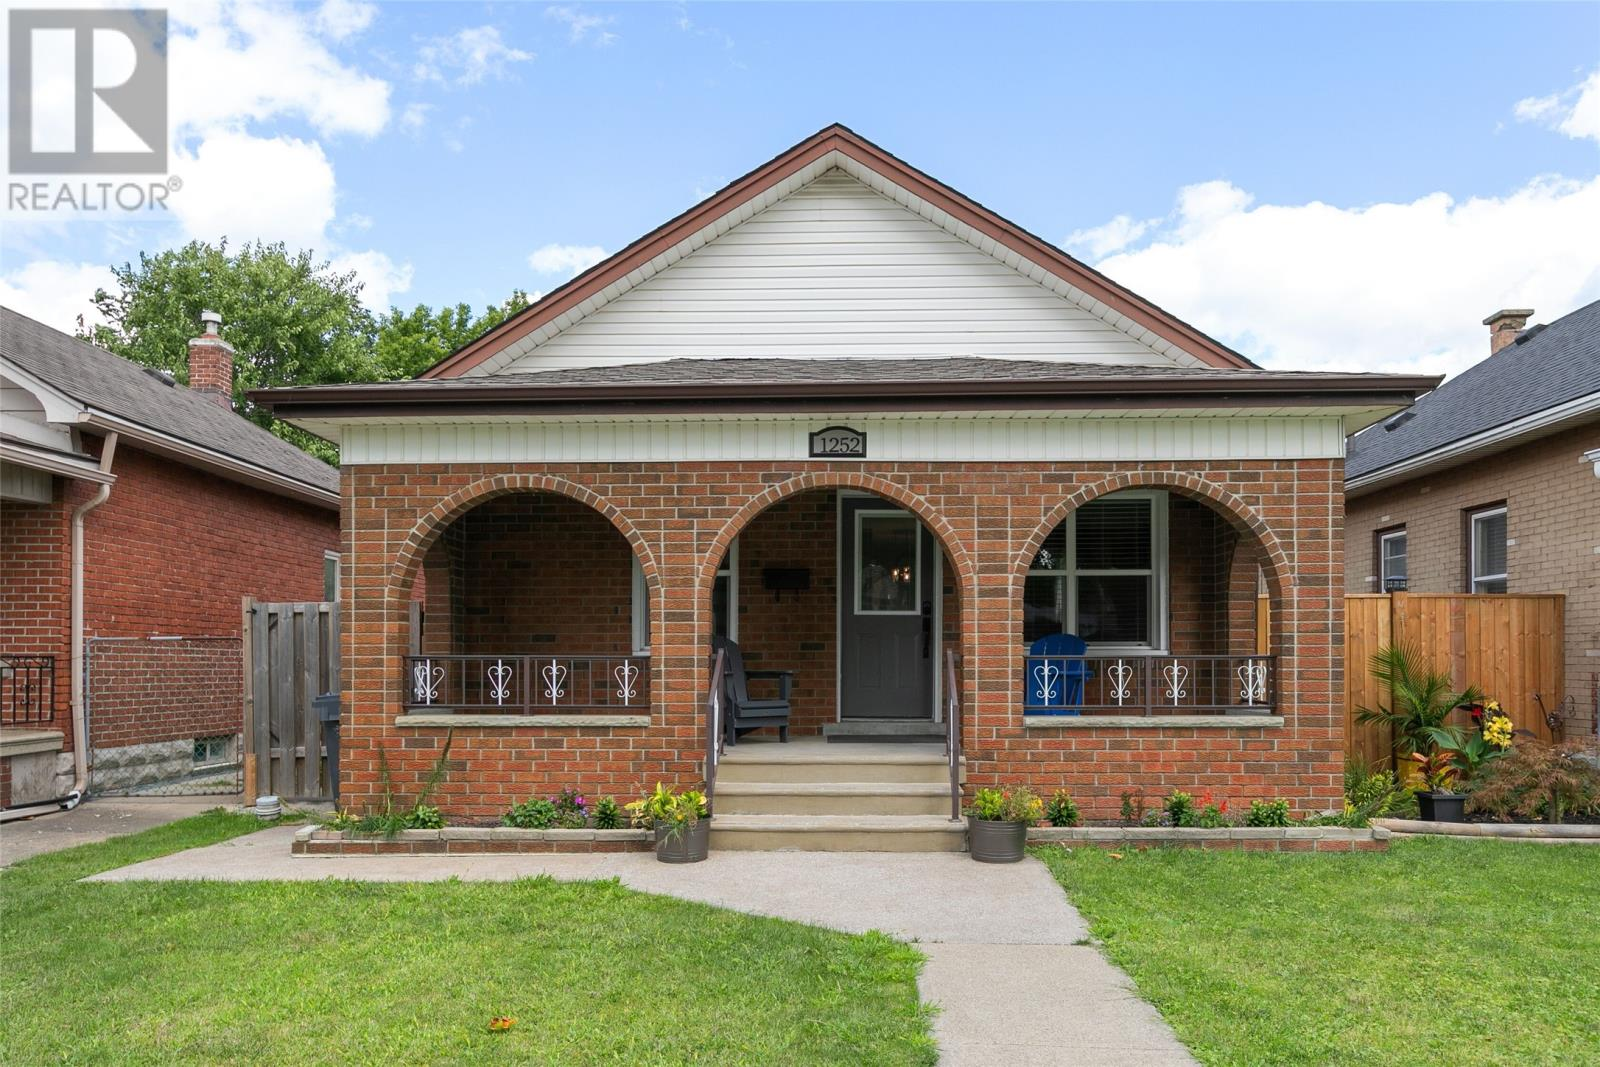 Removed: 1252 Westcott, Windsor, ON - Removed on 2019-09-06 05:39:11